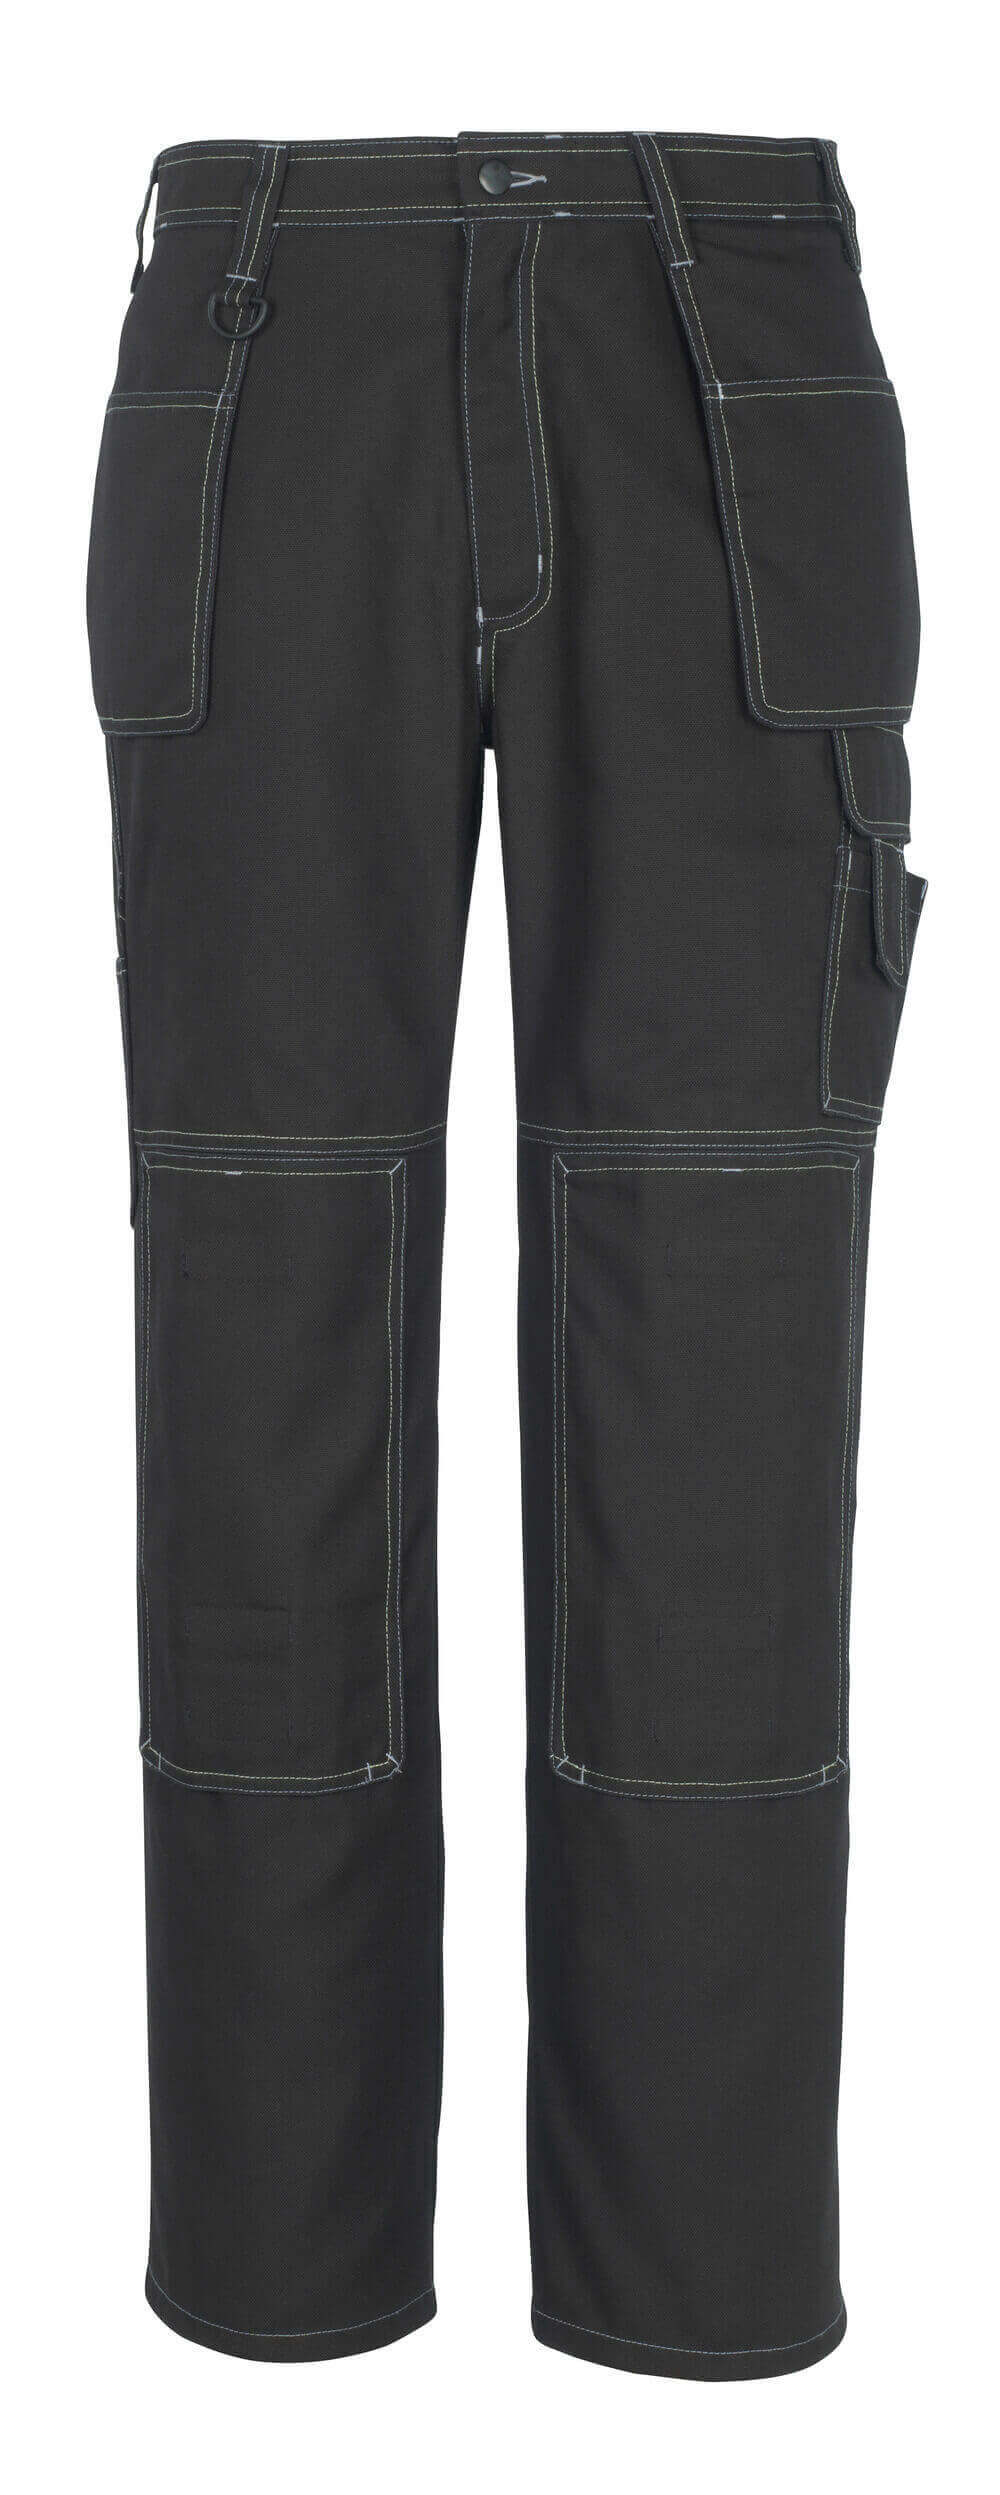 50194-884-09 Pants with kneepad pockets and holster pockets - black